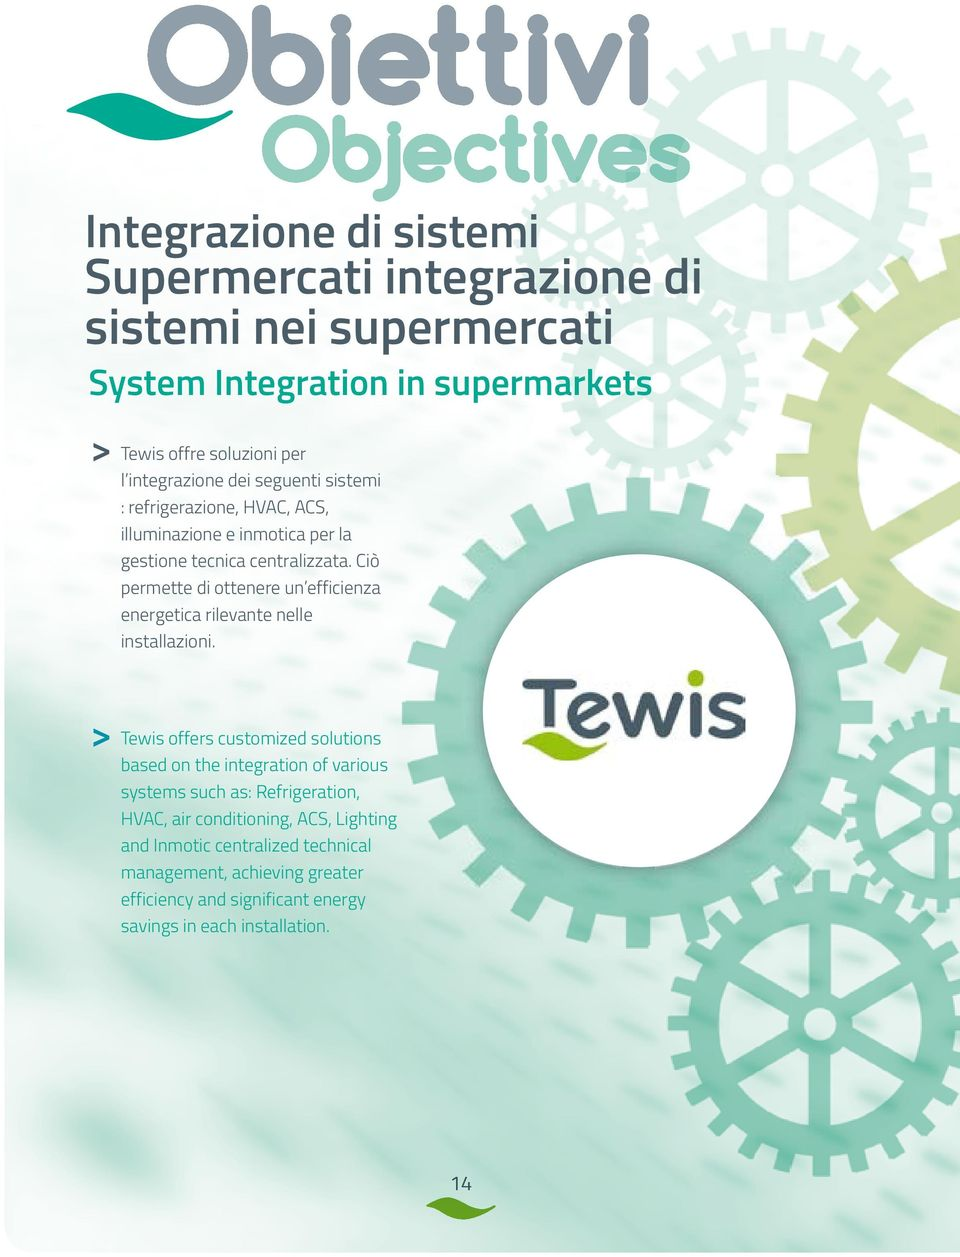 Objectives Integrazione di sistemi Supermercati integrazione di sistemi nei supermercati System Integration in supermarkets Tewis offers customized solutions